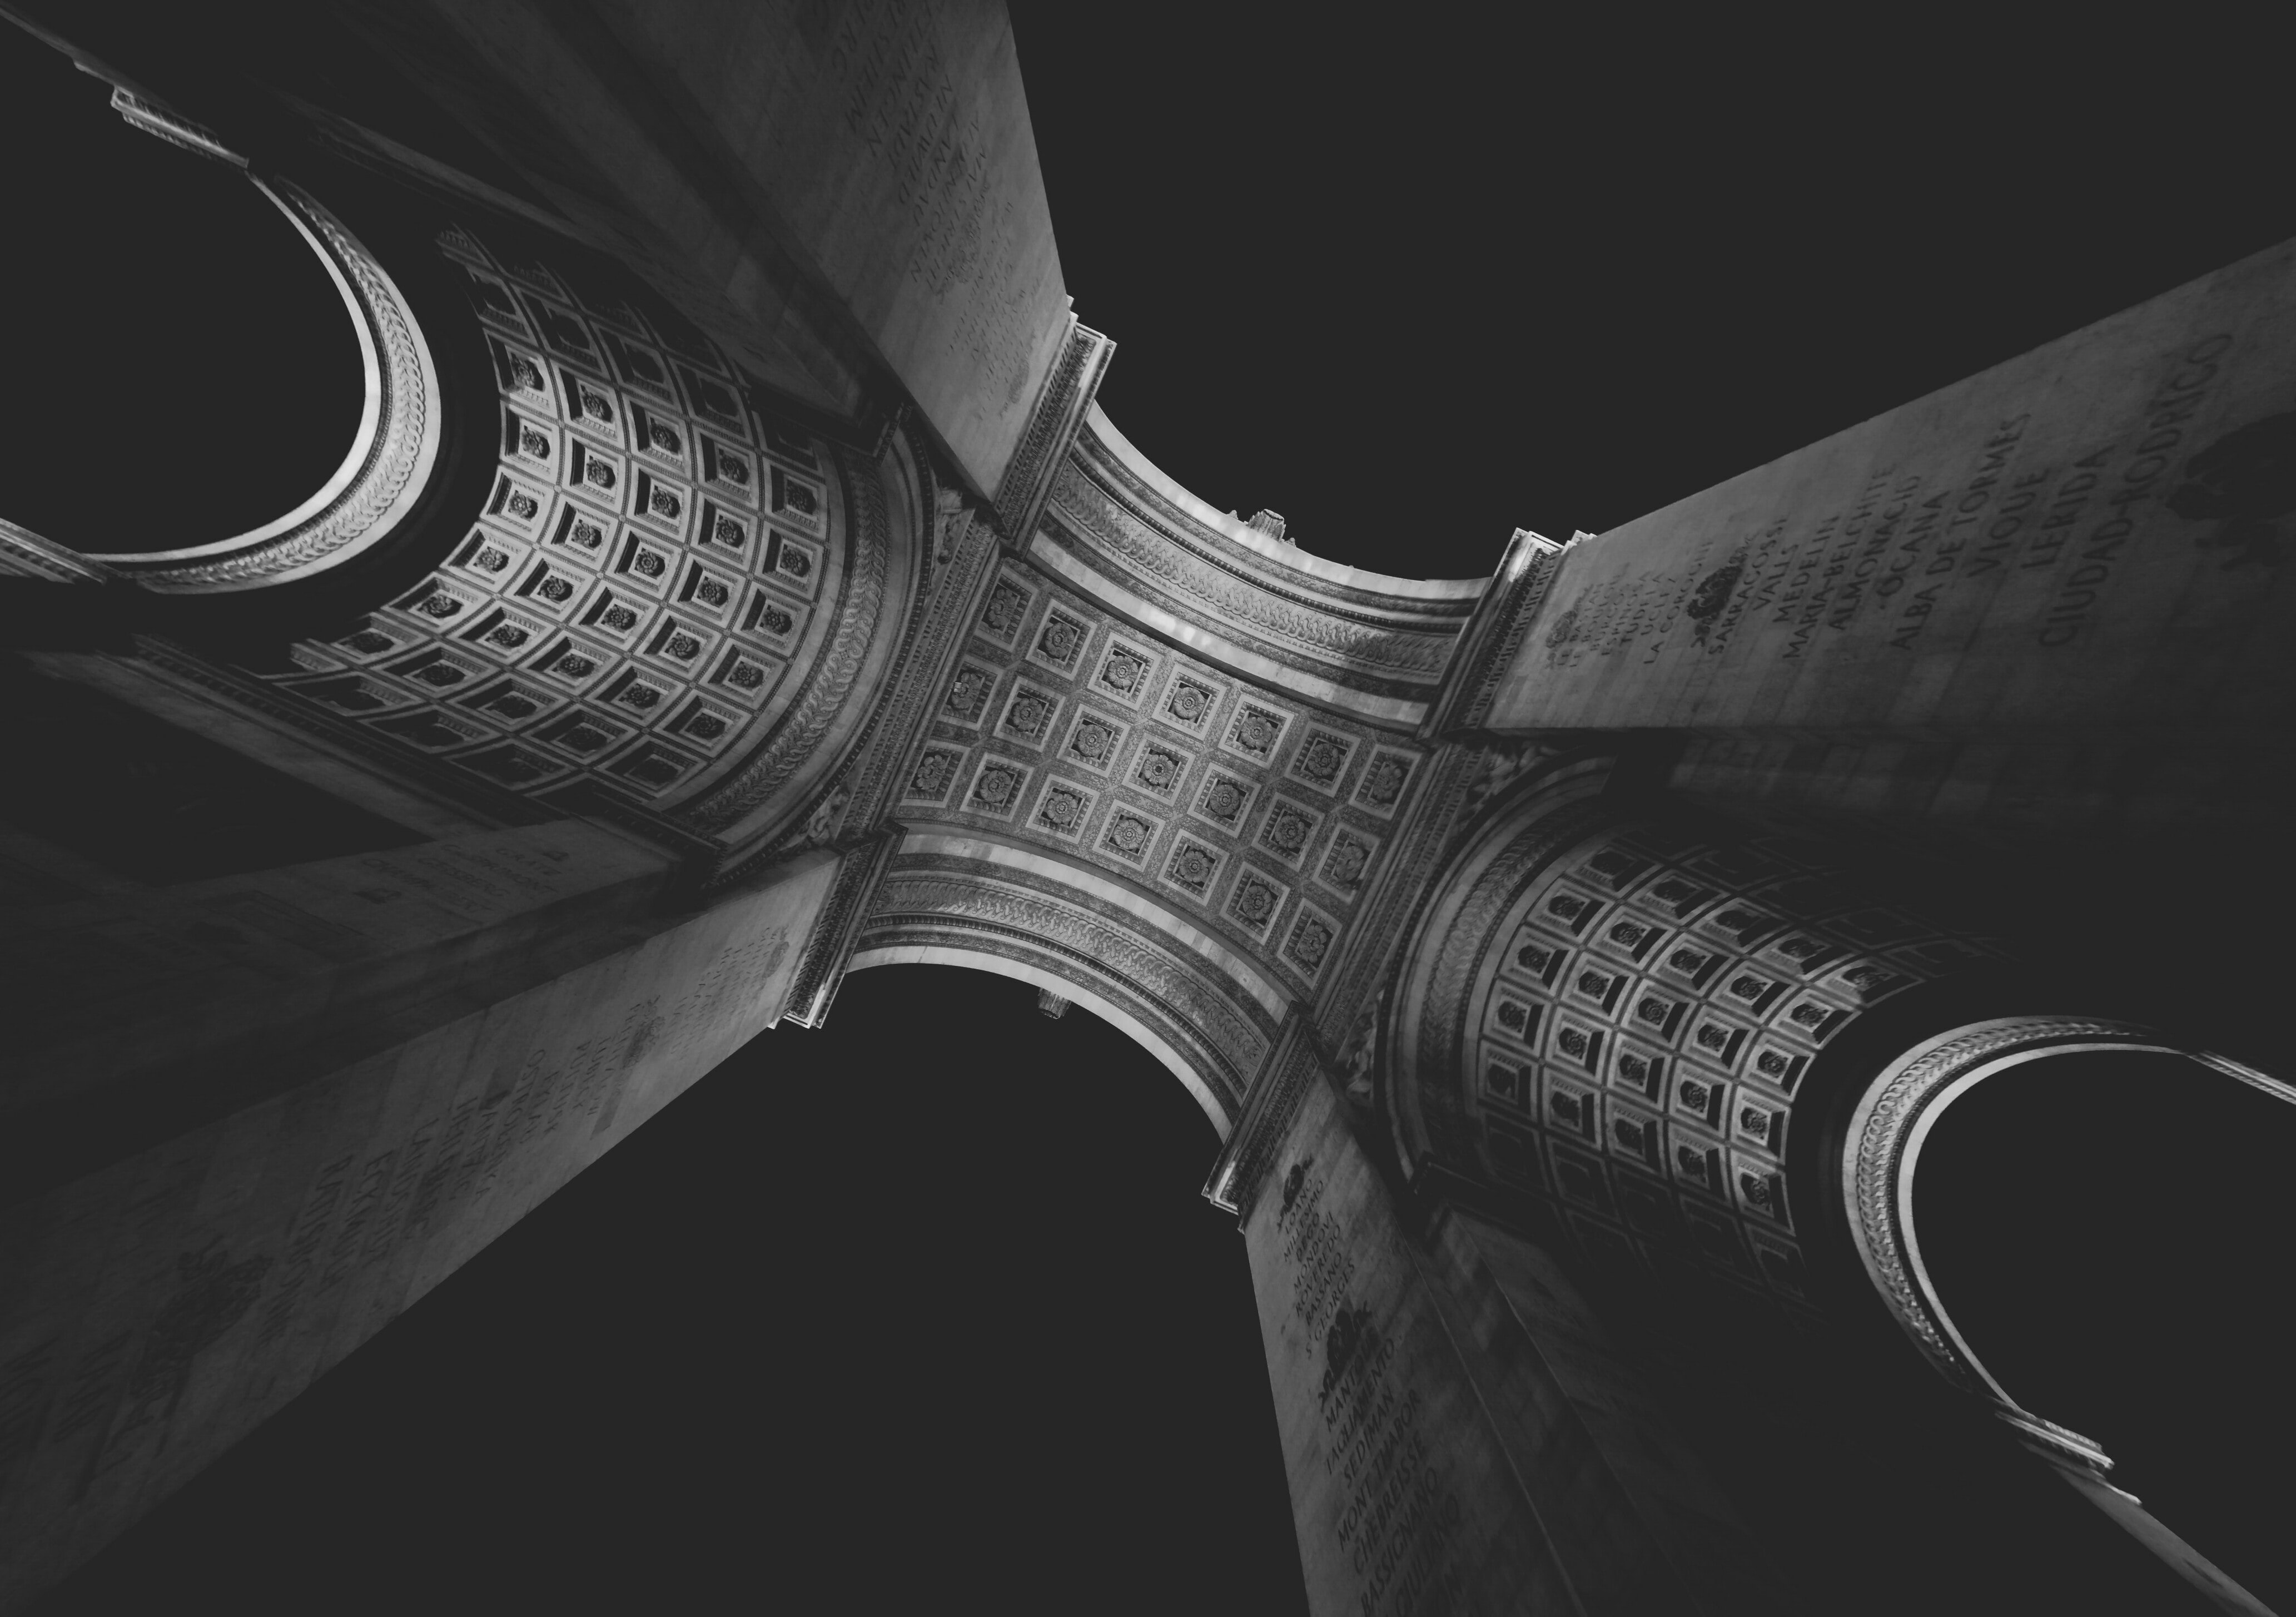 Looking up at the geometric architecture of the Arc De Triomphe in Paris, France